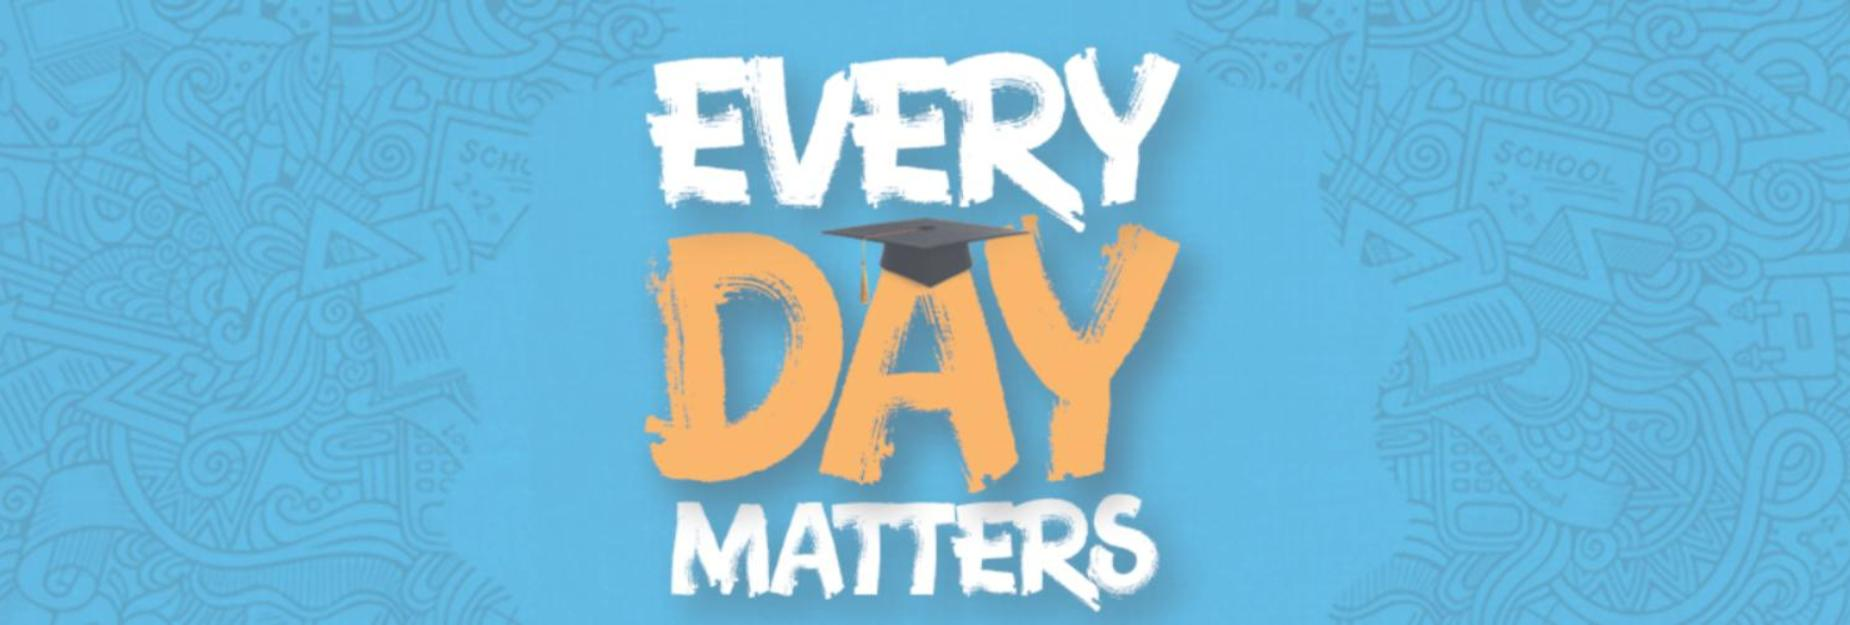 Oregon Every Day Matters Attendance Campaign